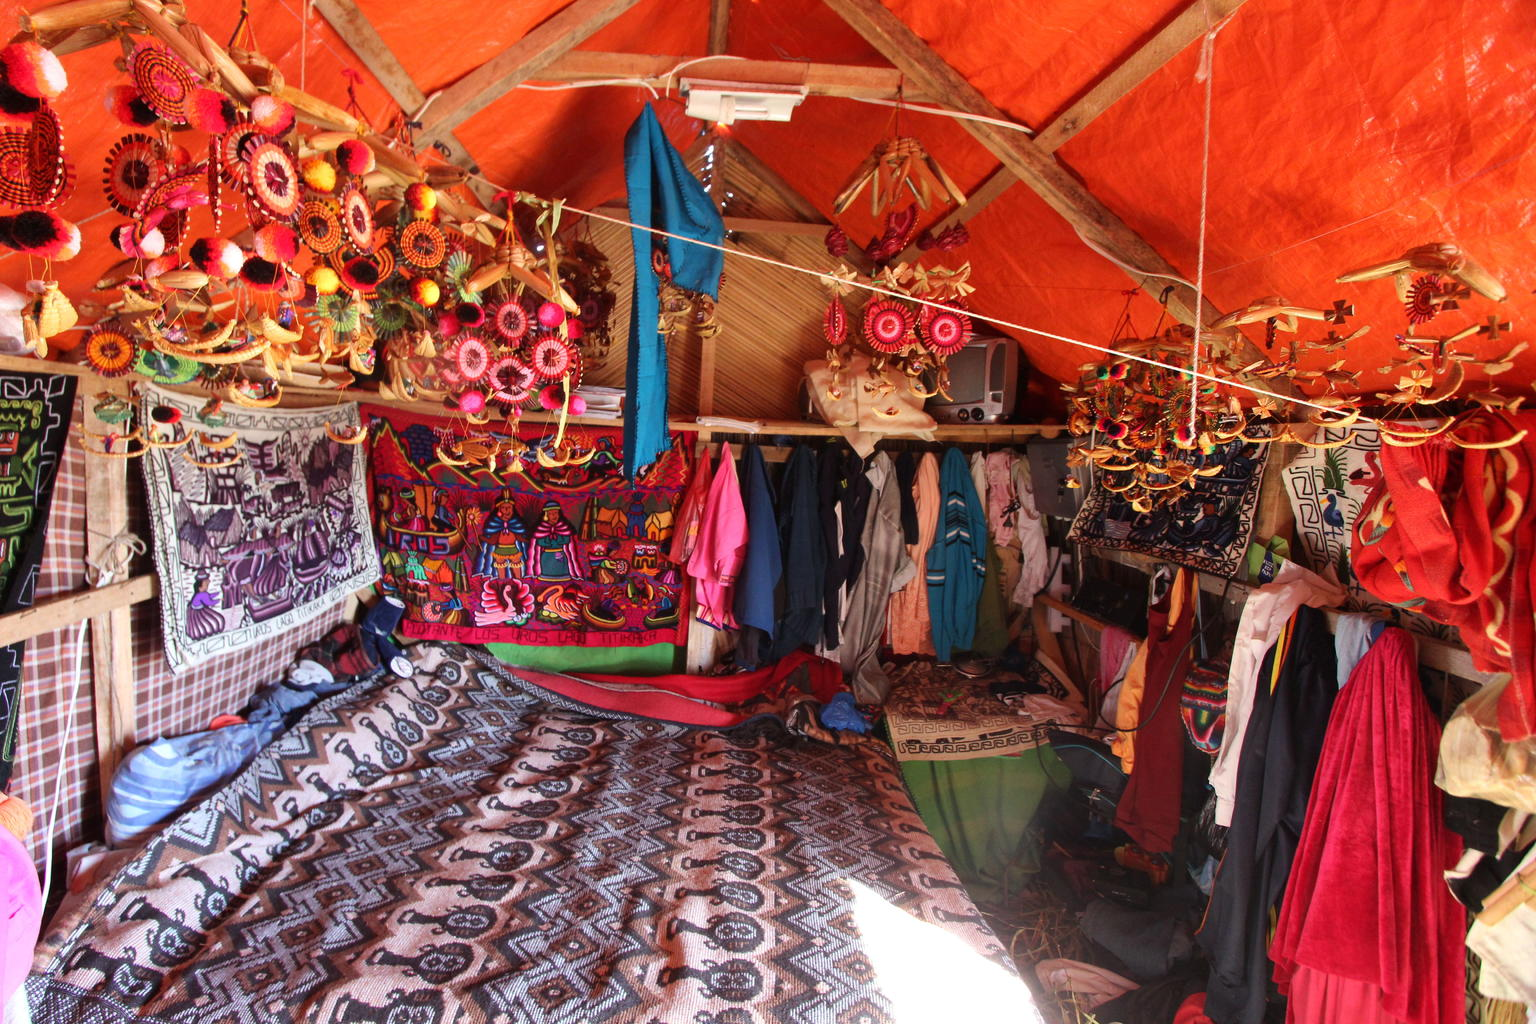 MAIS FOTOS, Uros floating islands & Taquile island Titicaca Full Day